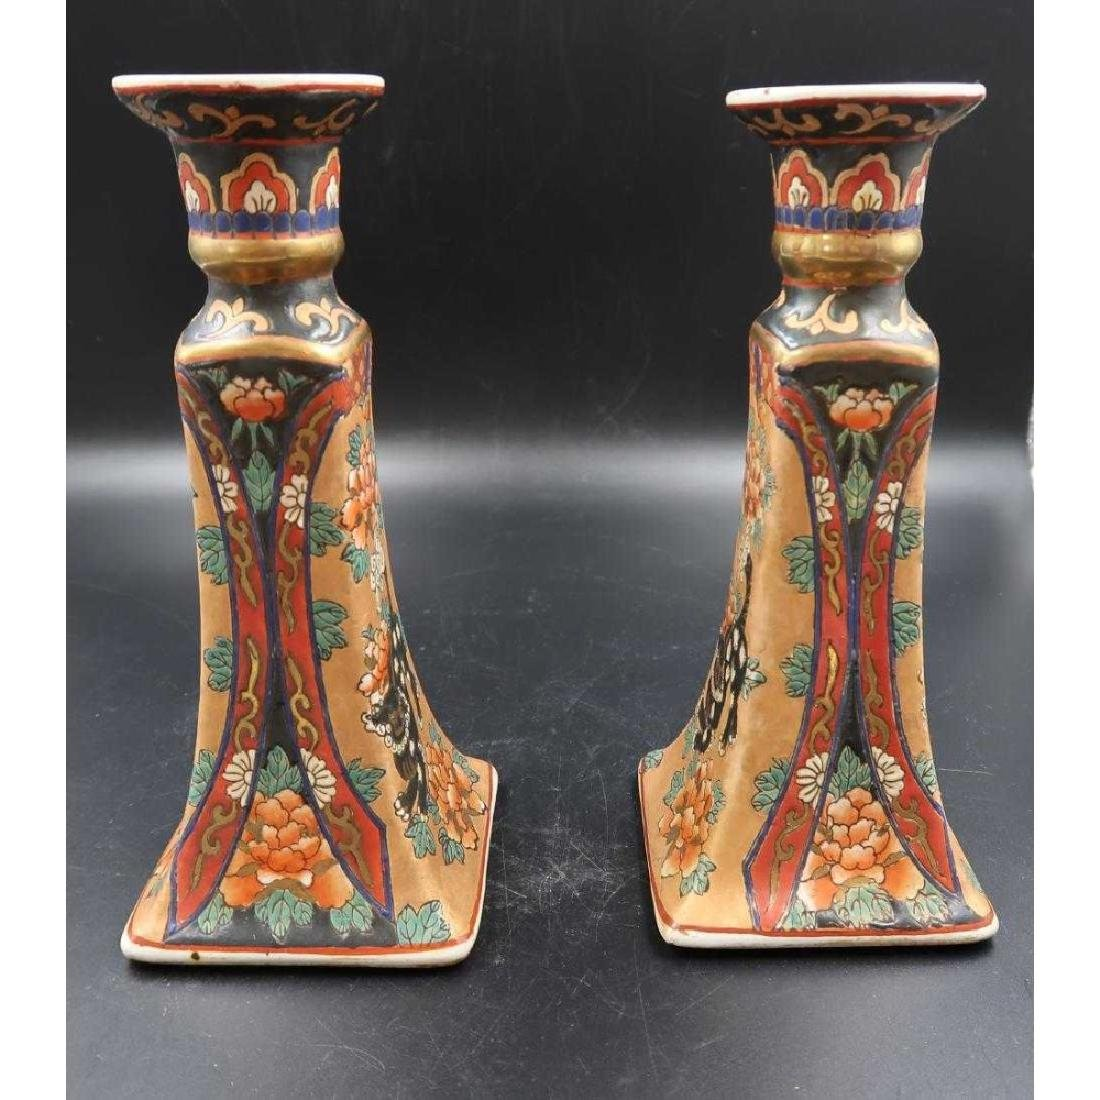 Pair 1860s import medallion candle sticks - 2